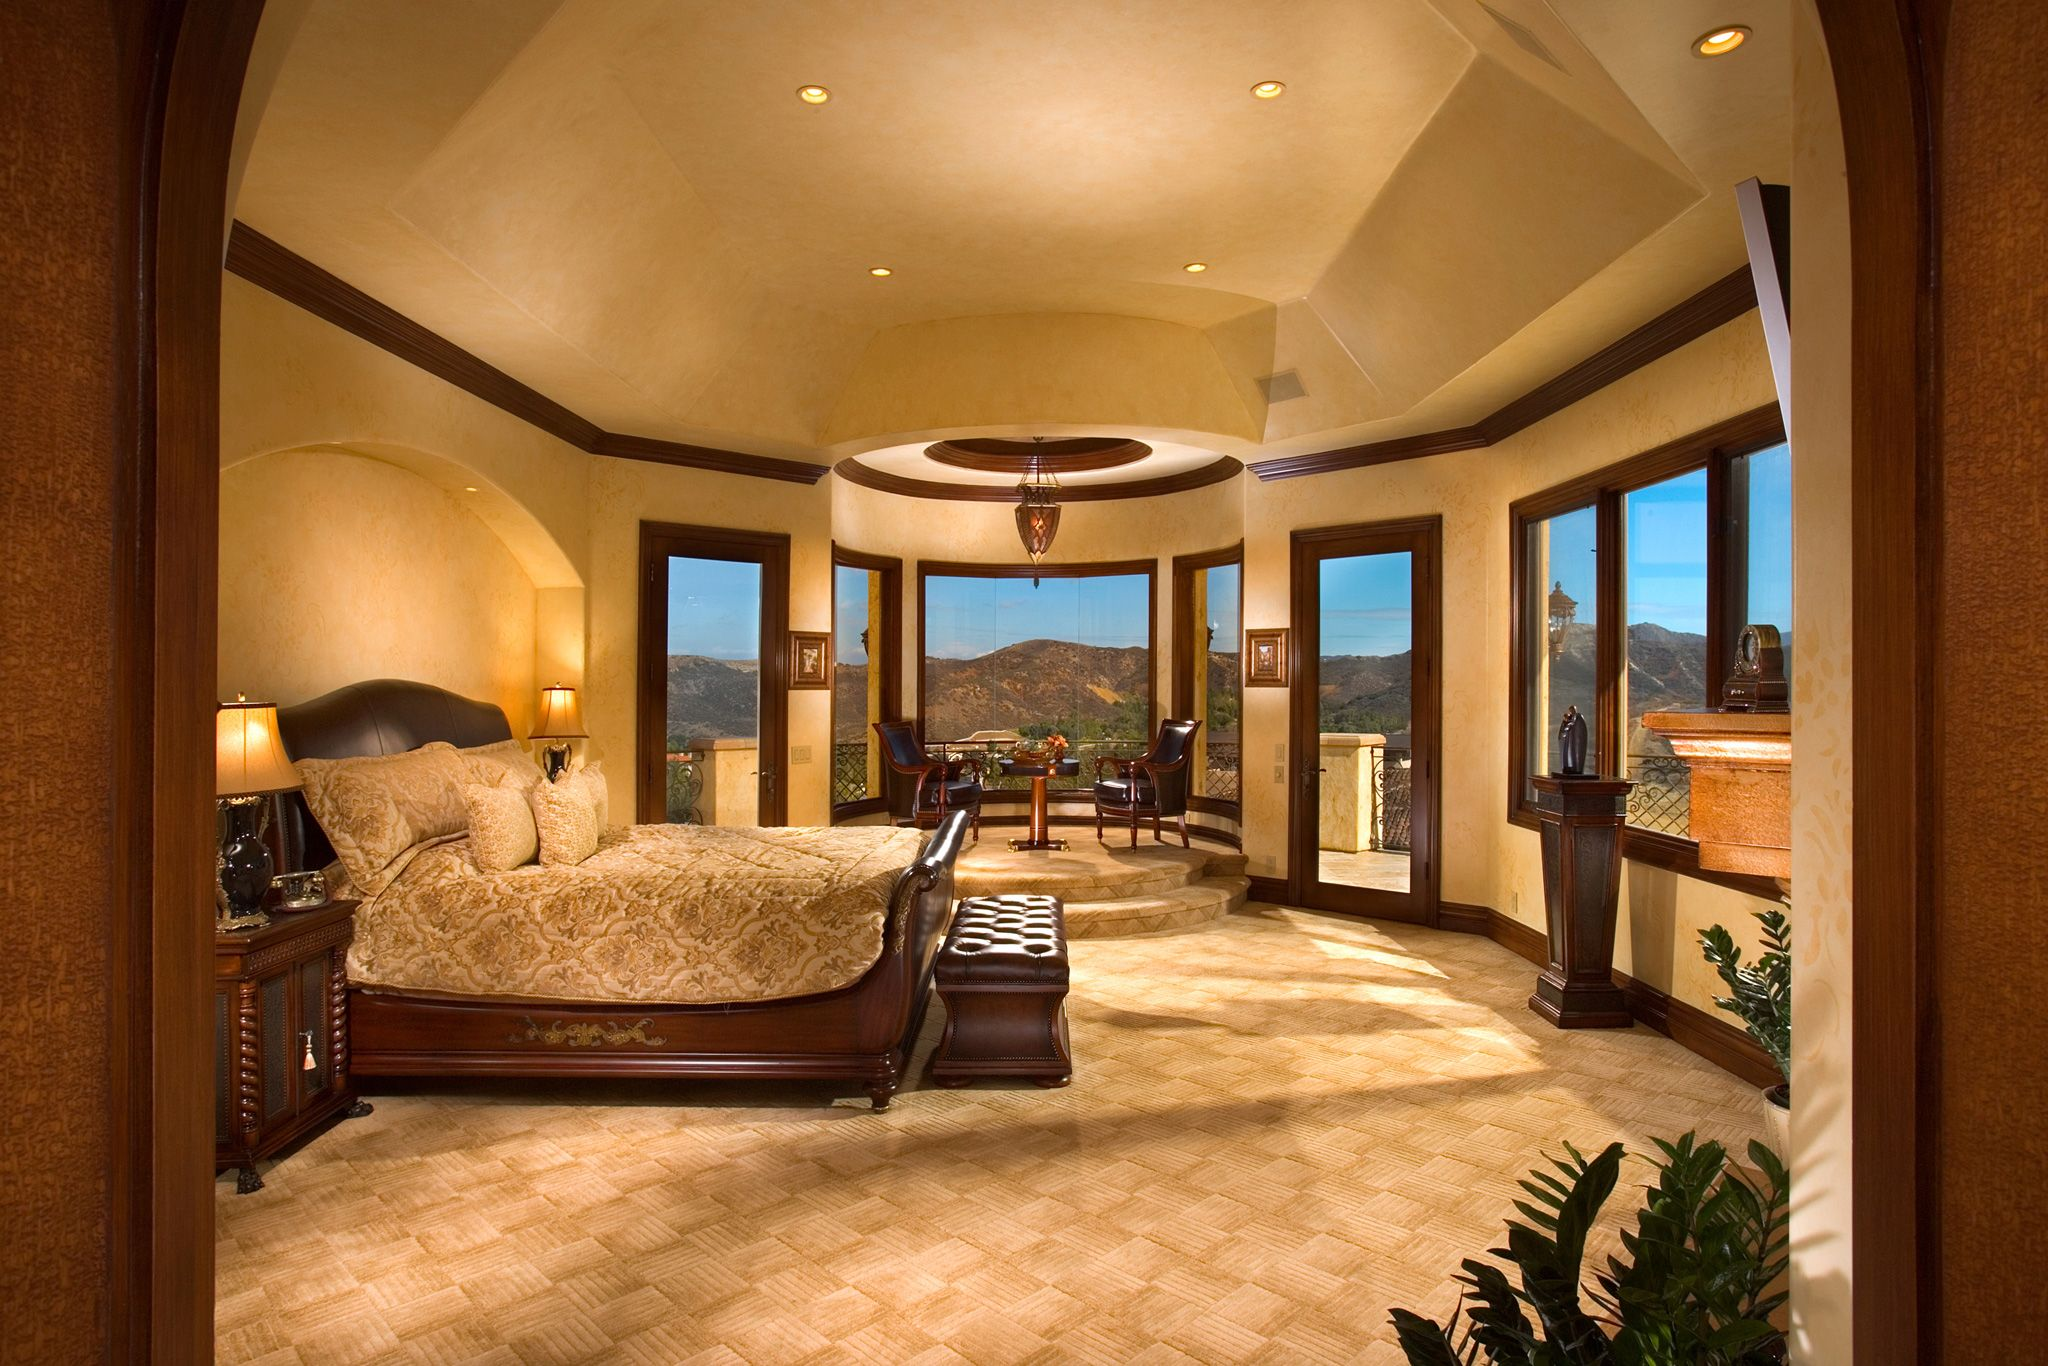 21 incredible master bedrooms design ideas luxury master for Master bedroom room ideas